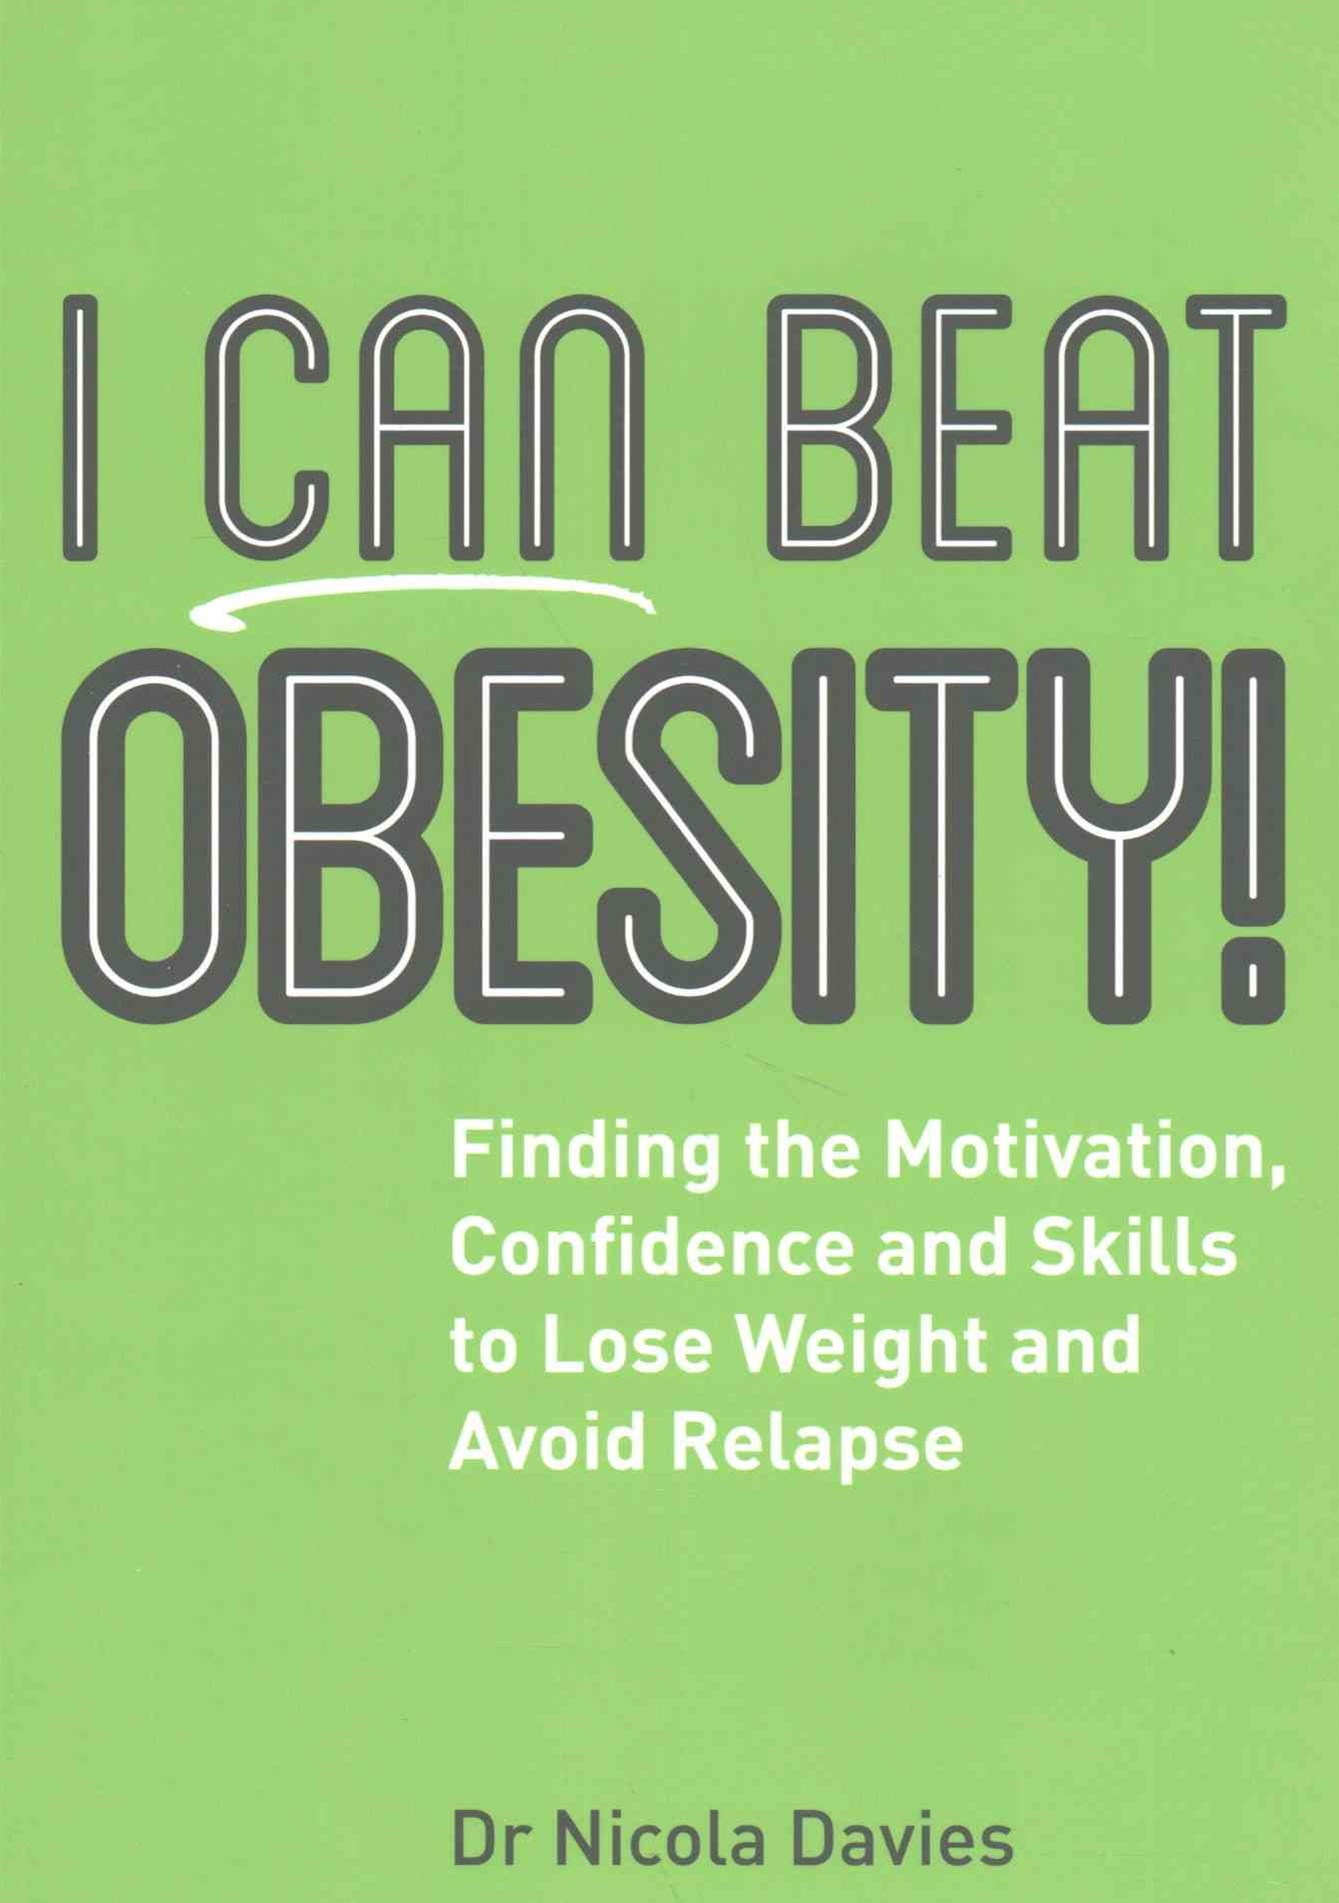 I Can Beat Obesity!: Finding the Motivation, Confidence and Skills to Lose Weight and Avoid Relapse